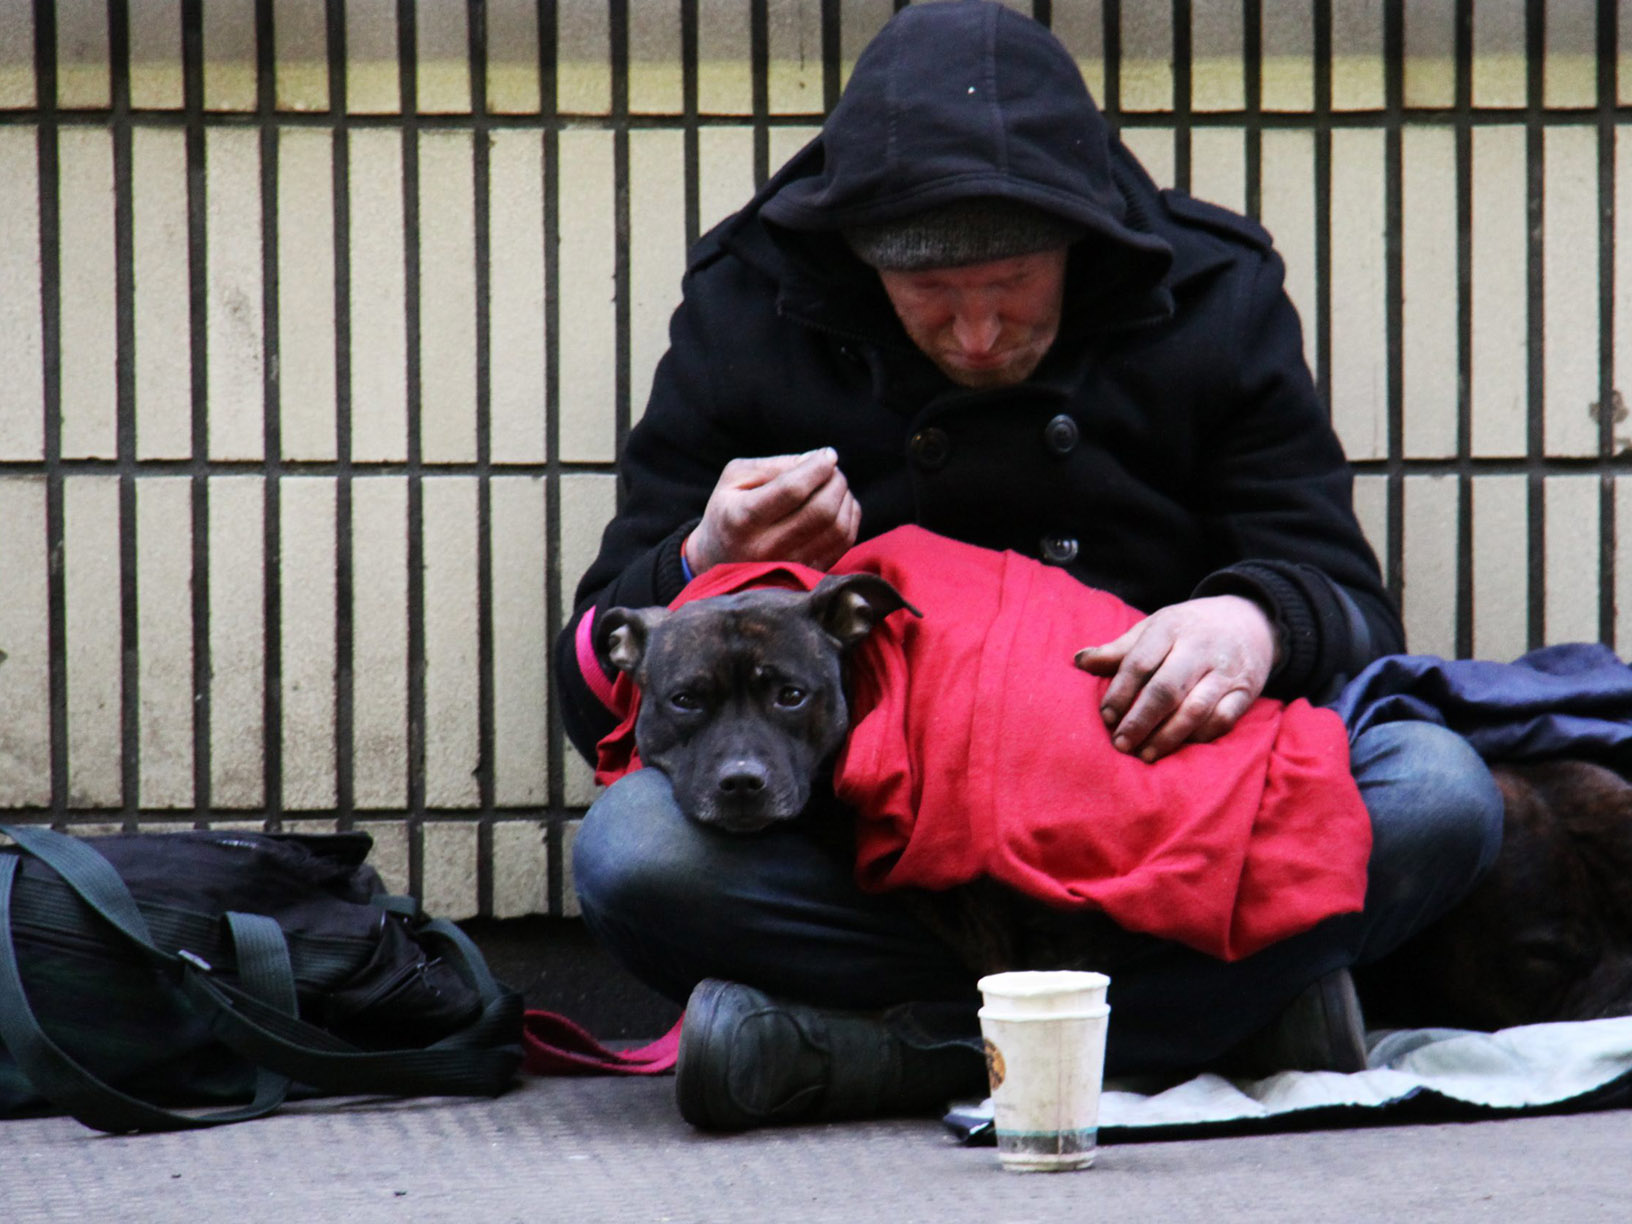 A rise in the number of homeless